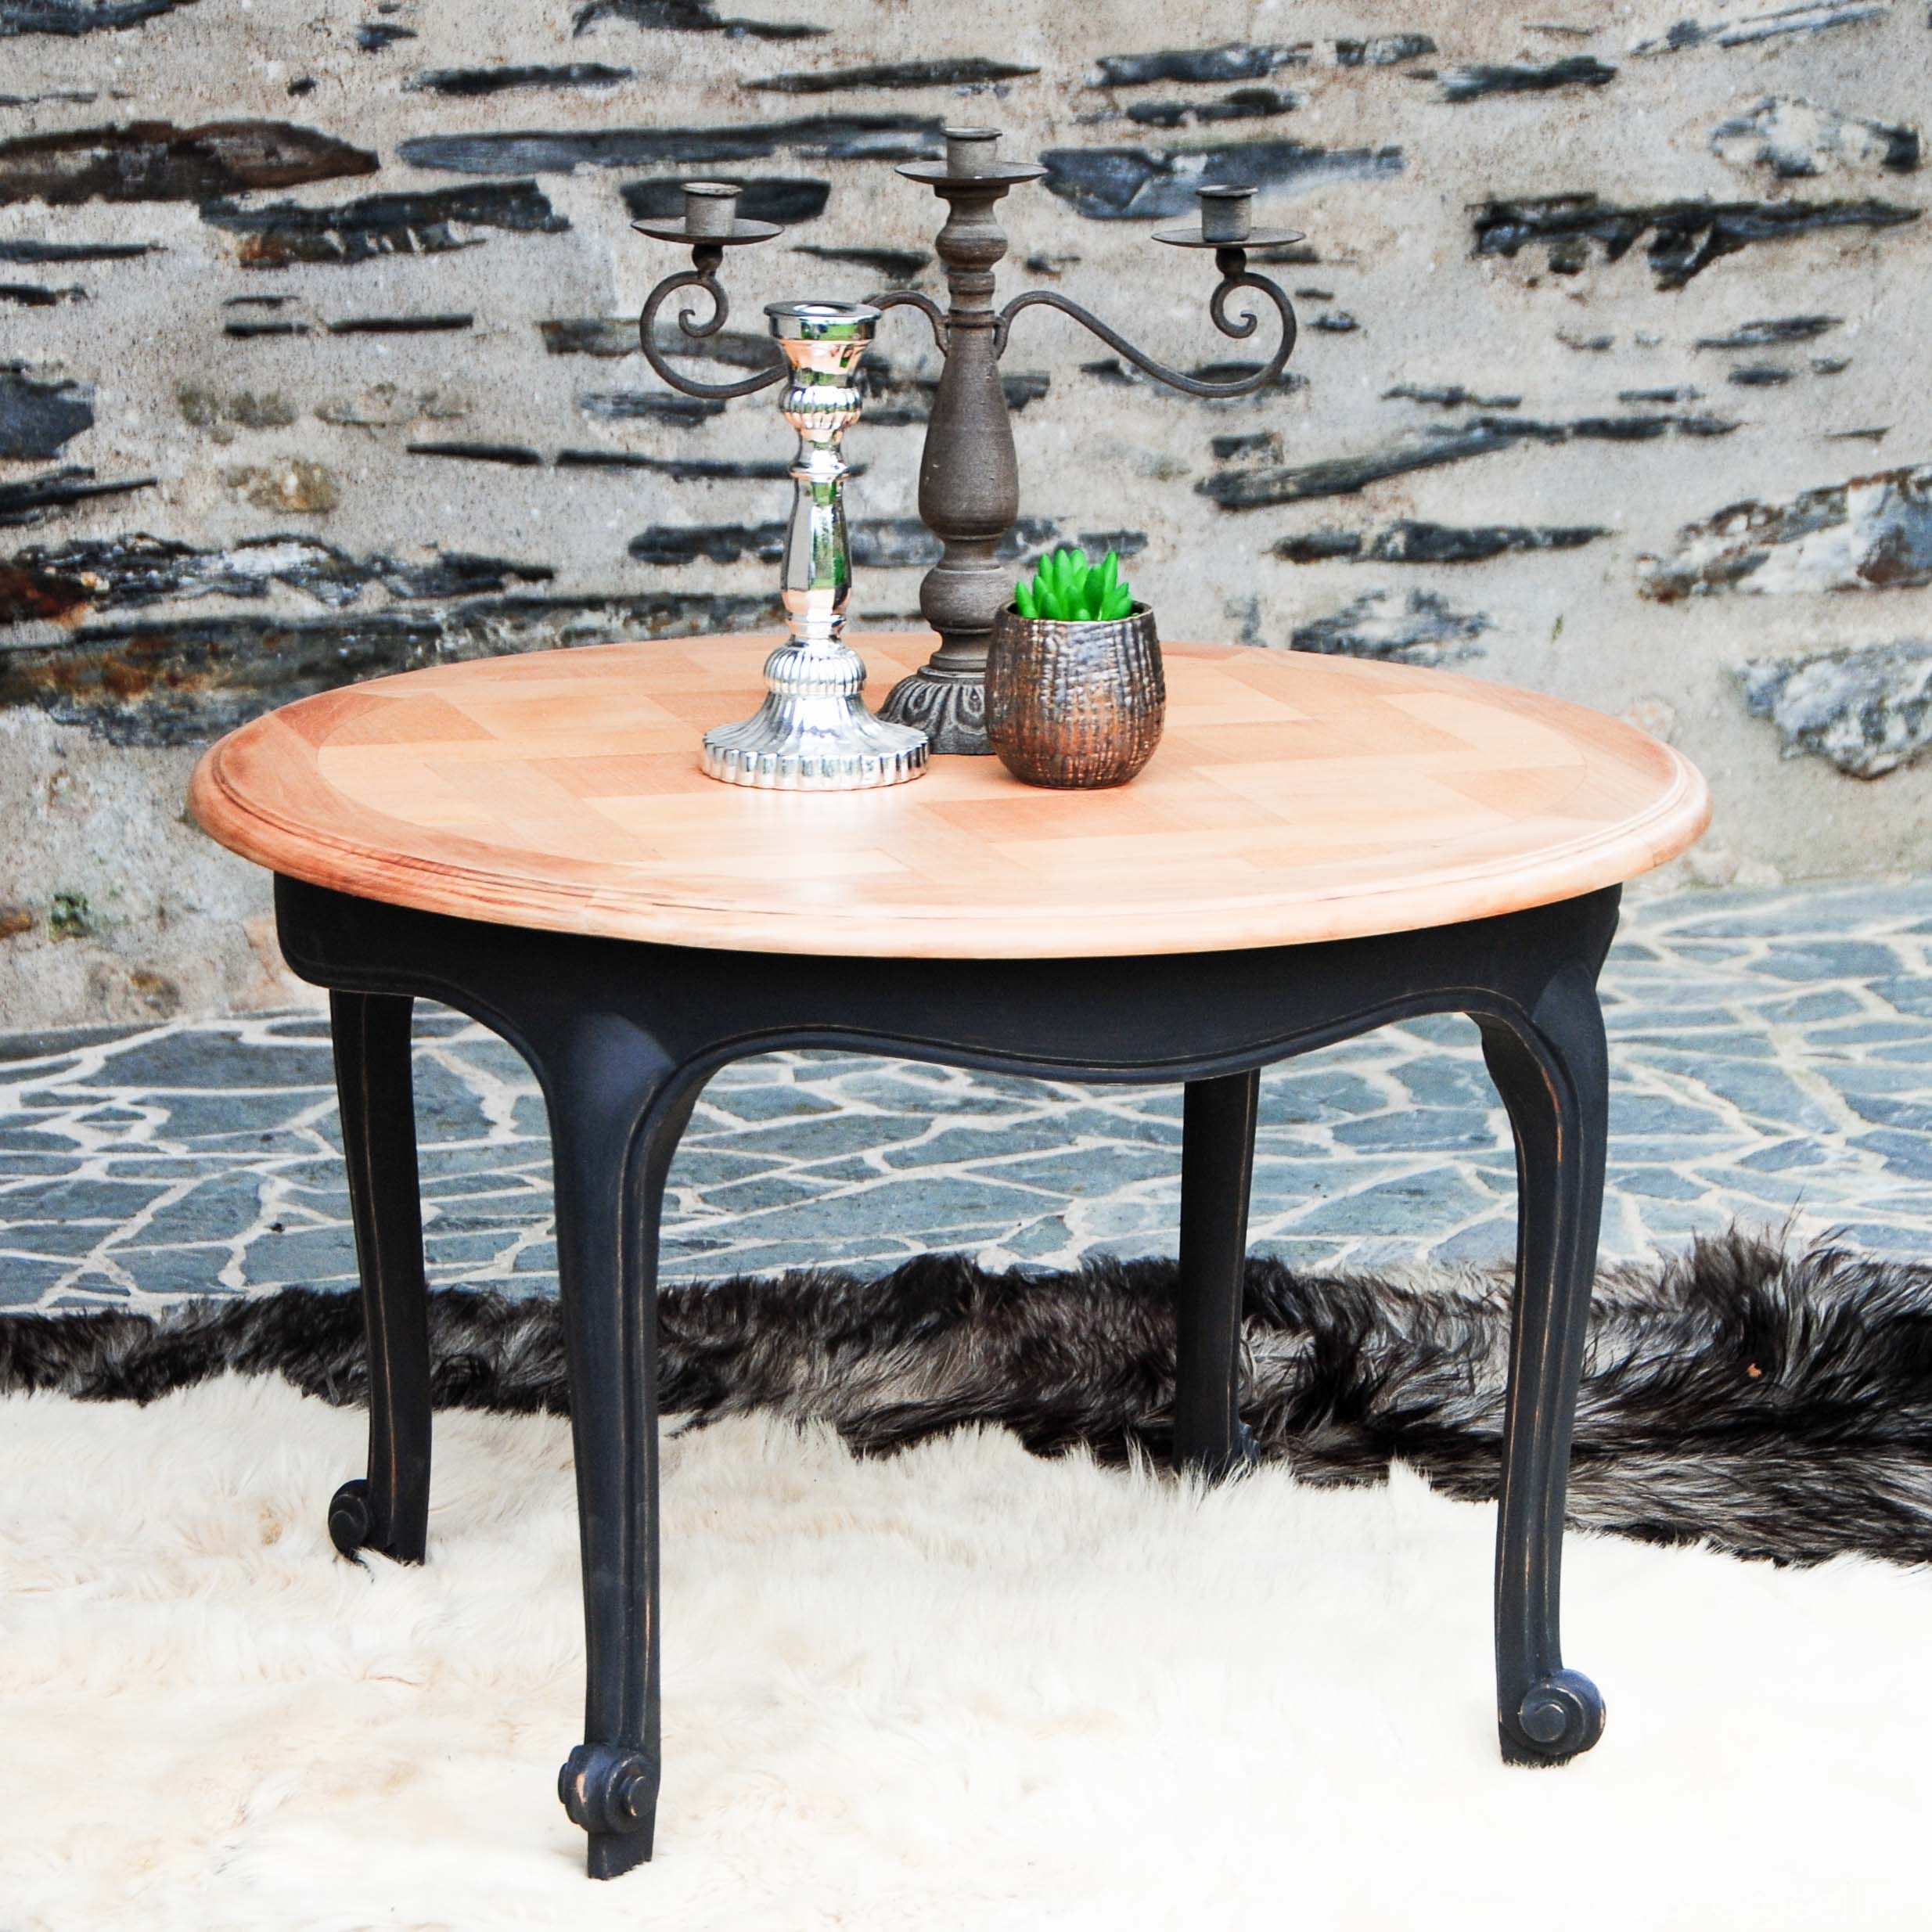 Relooker Une Table De Salon Table Basse Ronde Baroque Uac Sur With Relooker Une Table